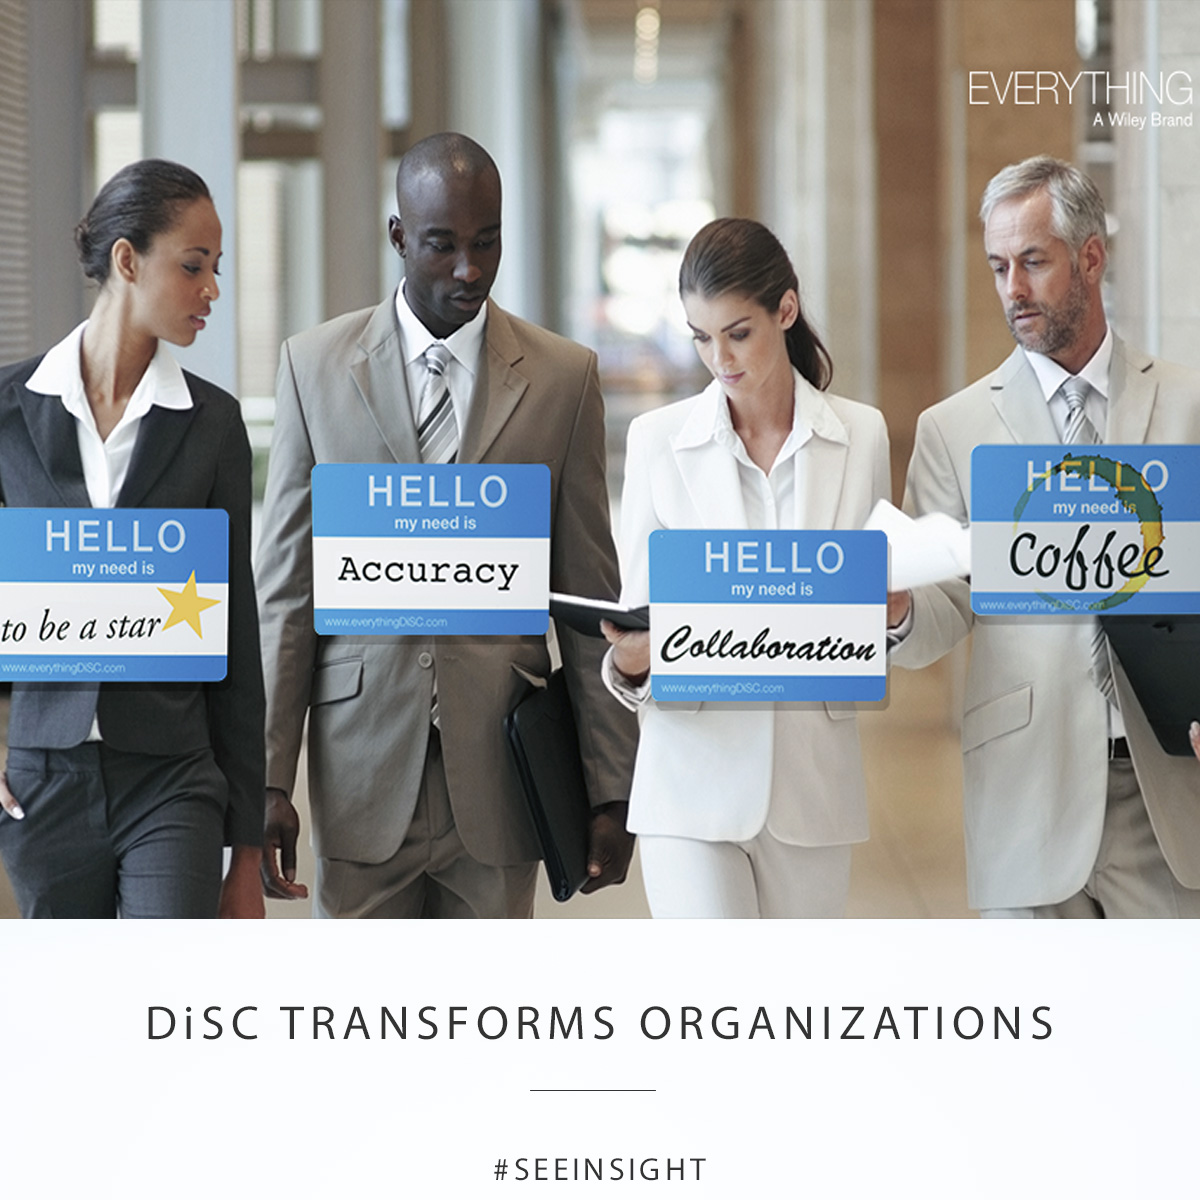 DiSC Transforms Organizations